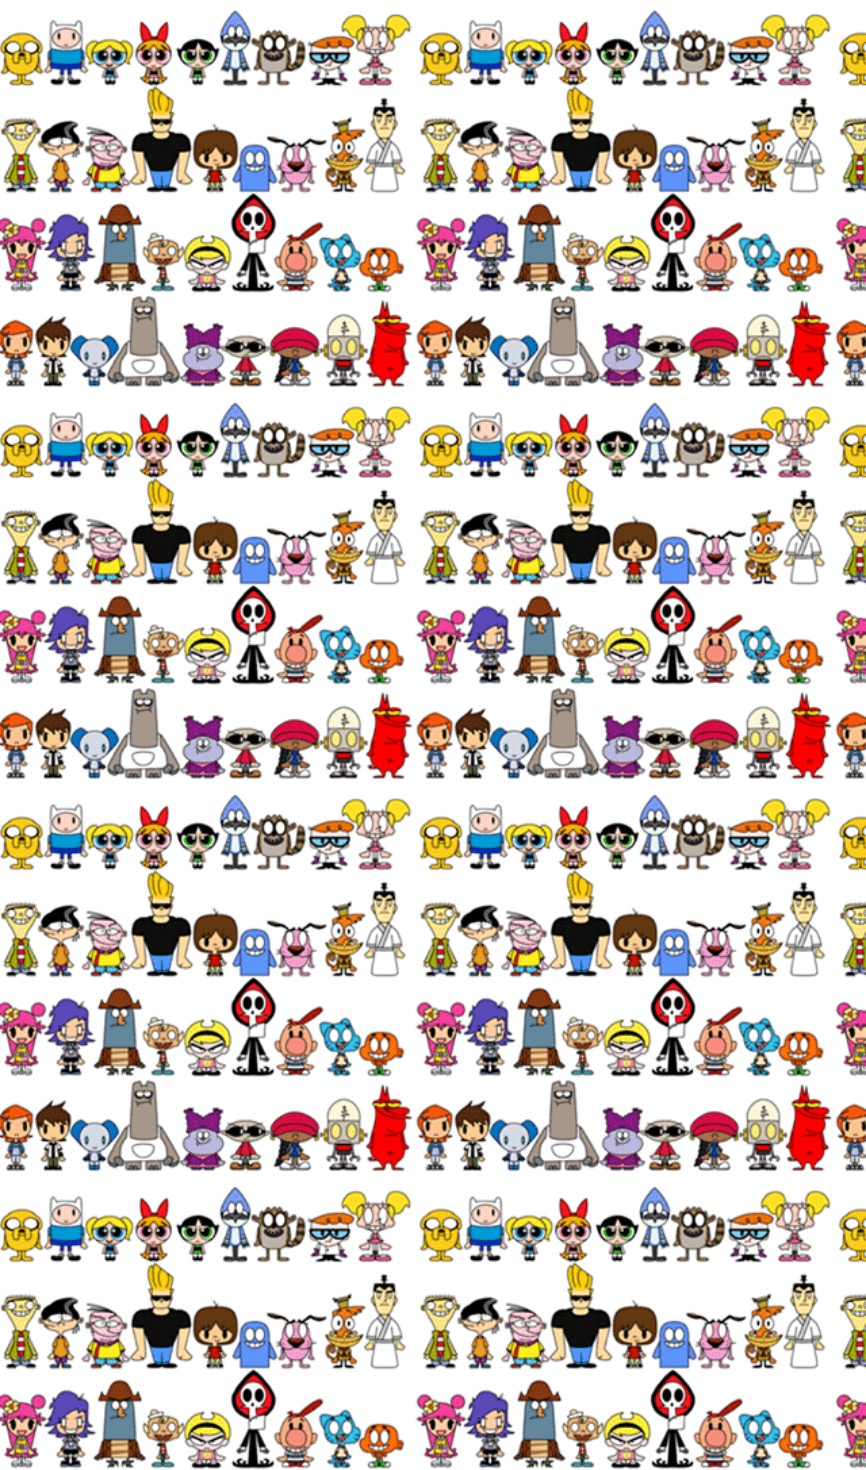 Pooh Wallpaper Iphone Patterns Backgrounds Wallpaper Images Cartoon Network